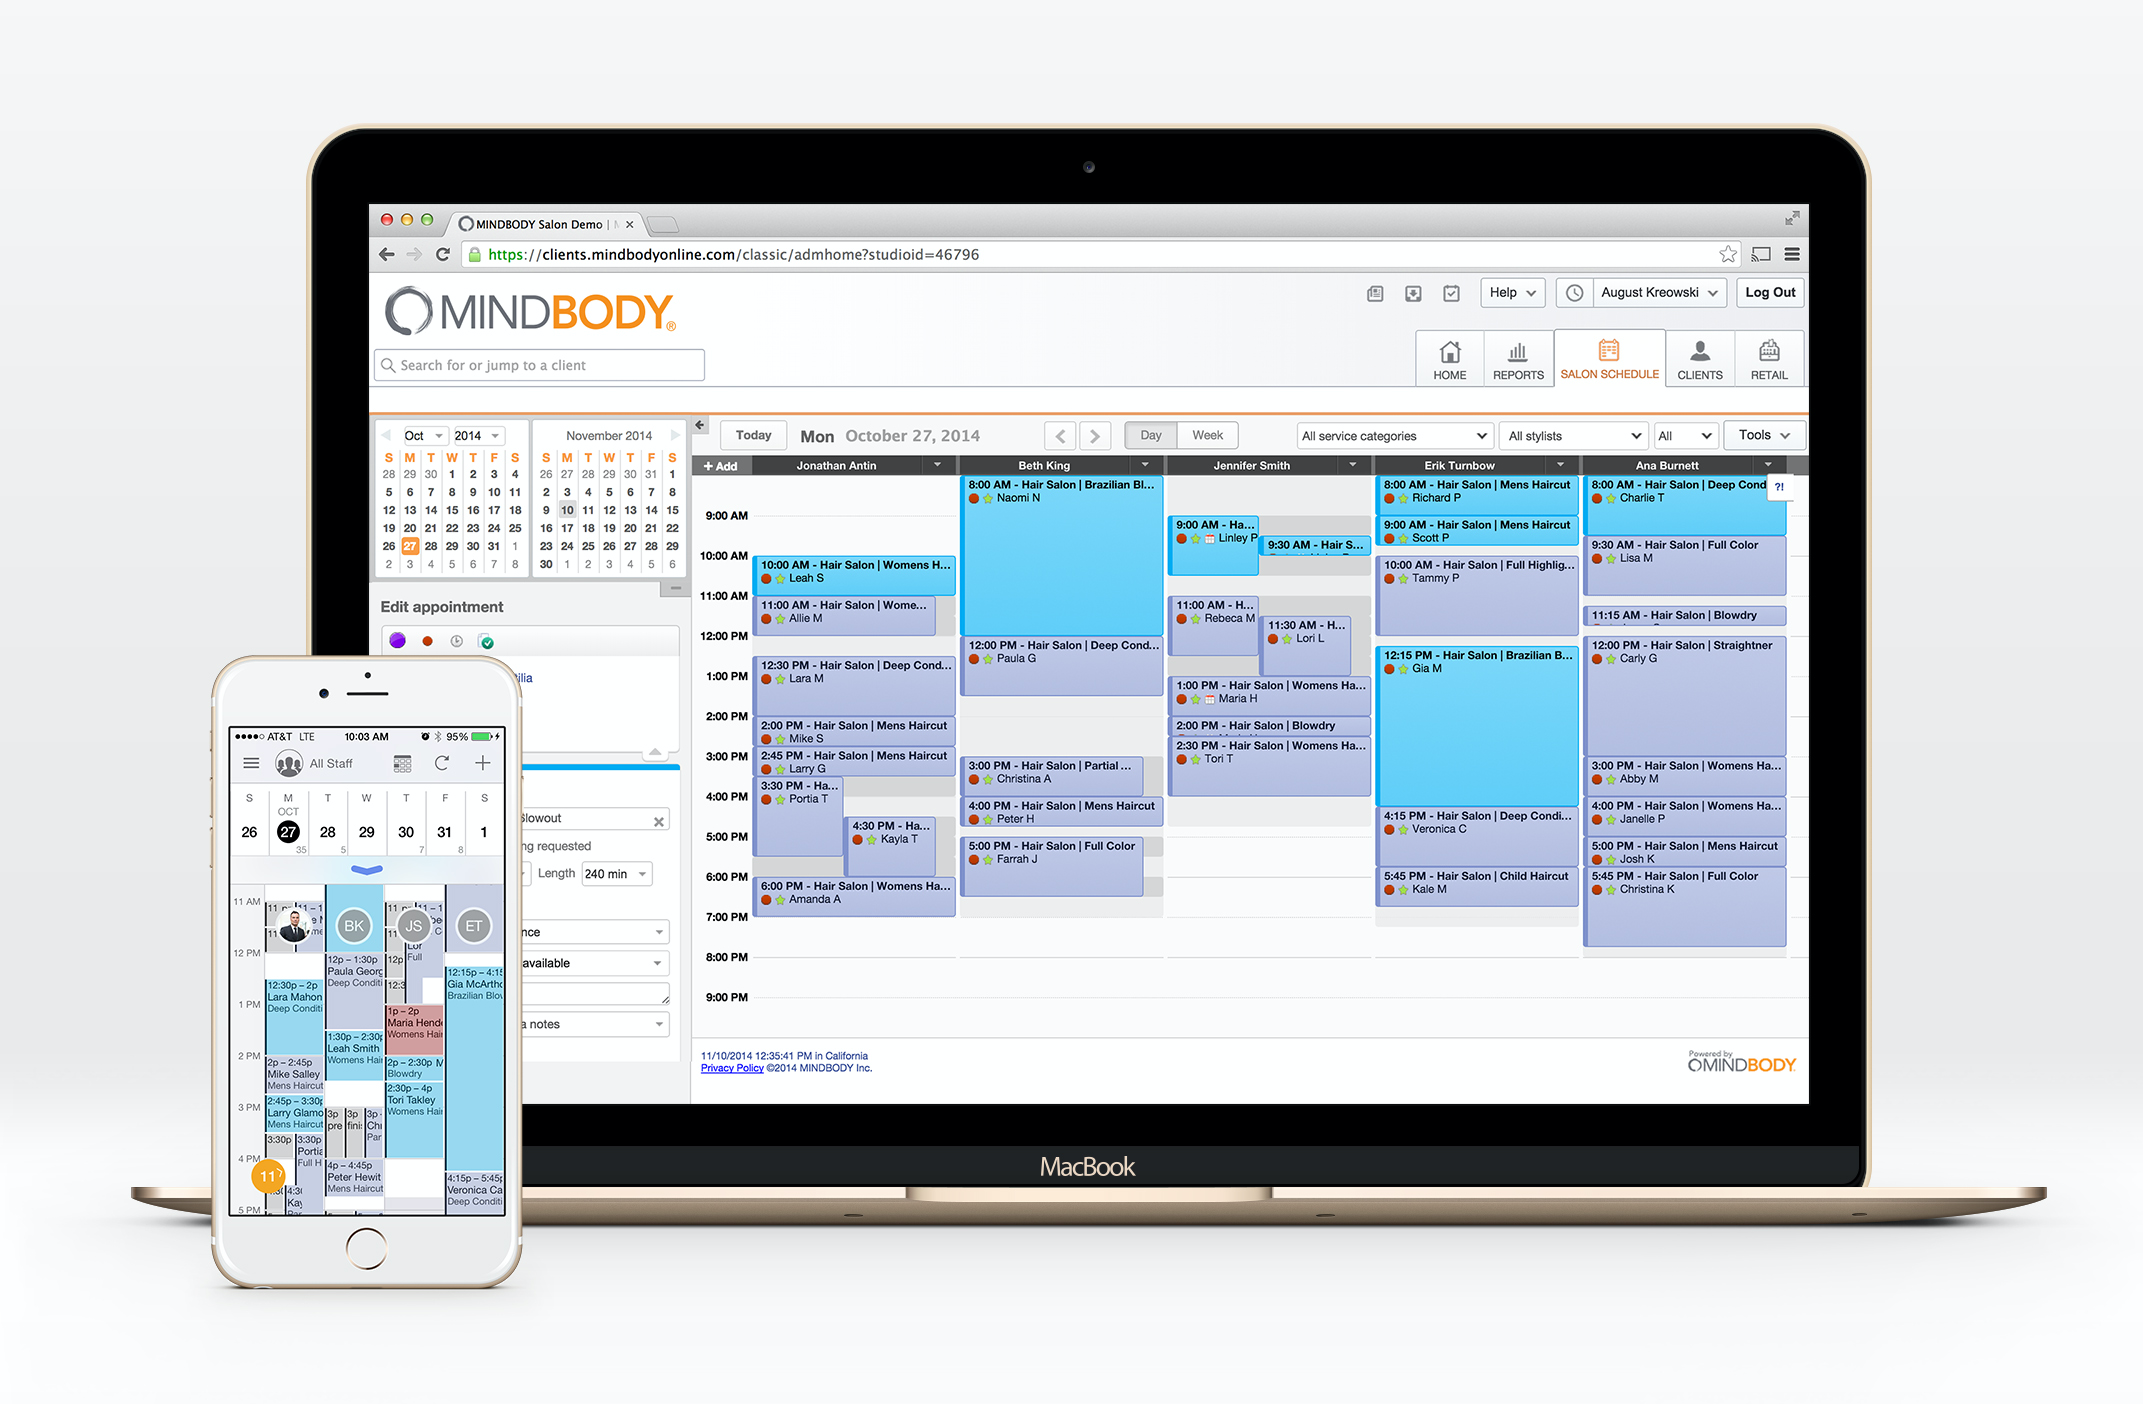 Check and manage schedules easily through a color-coded calendar